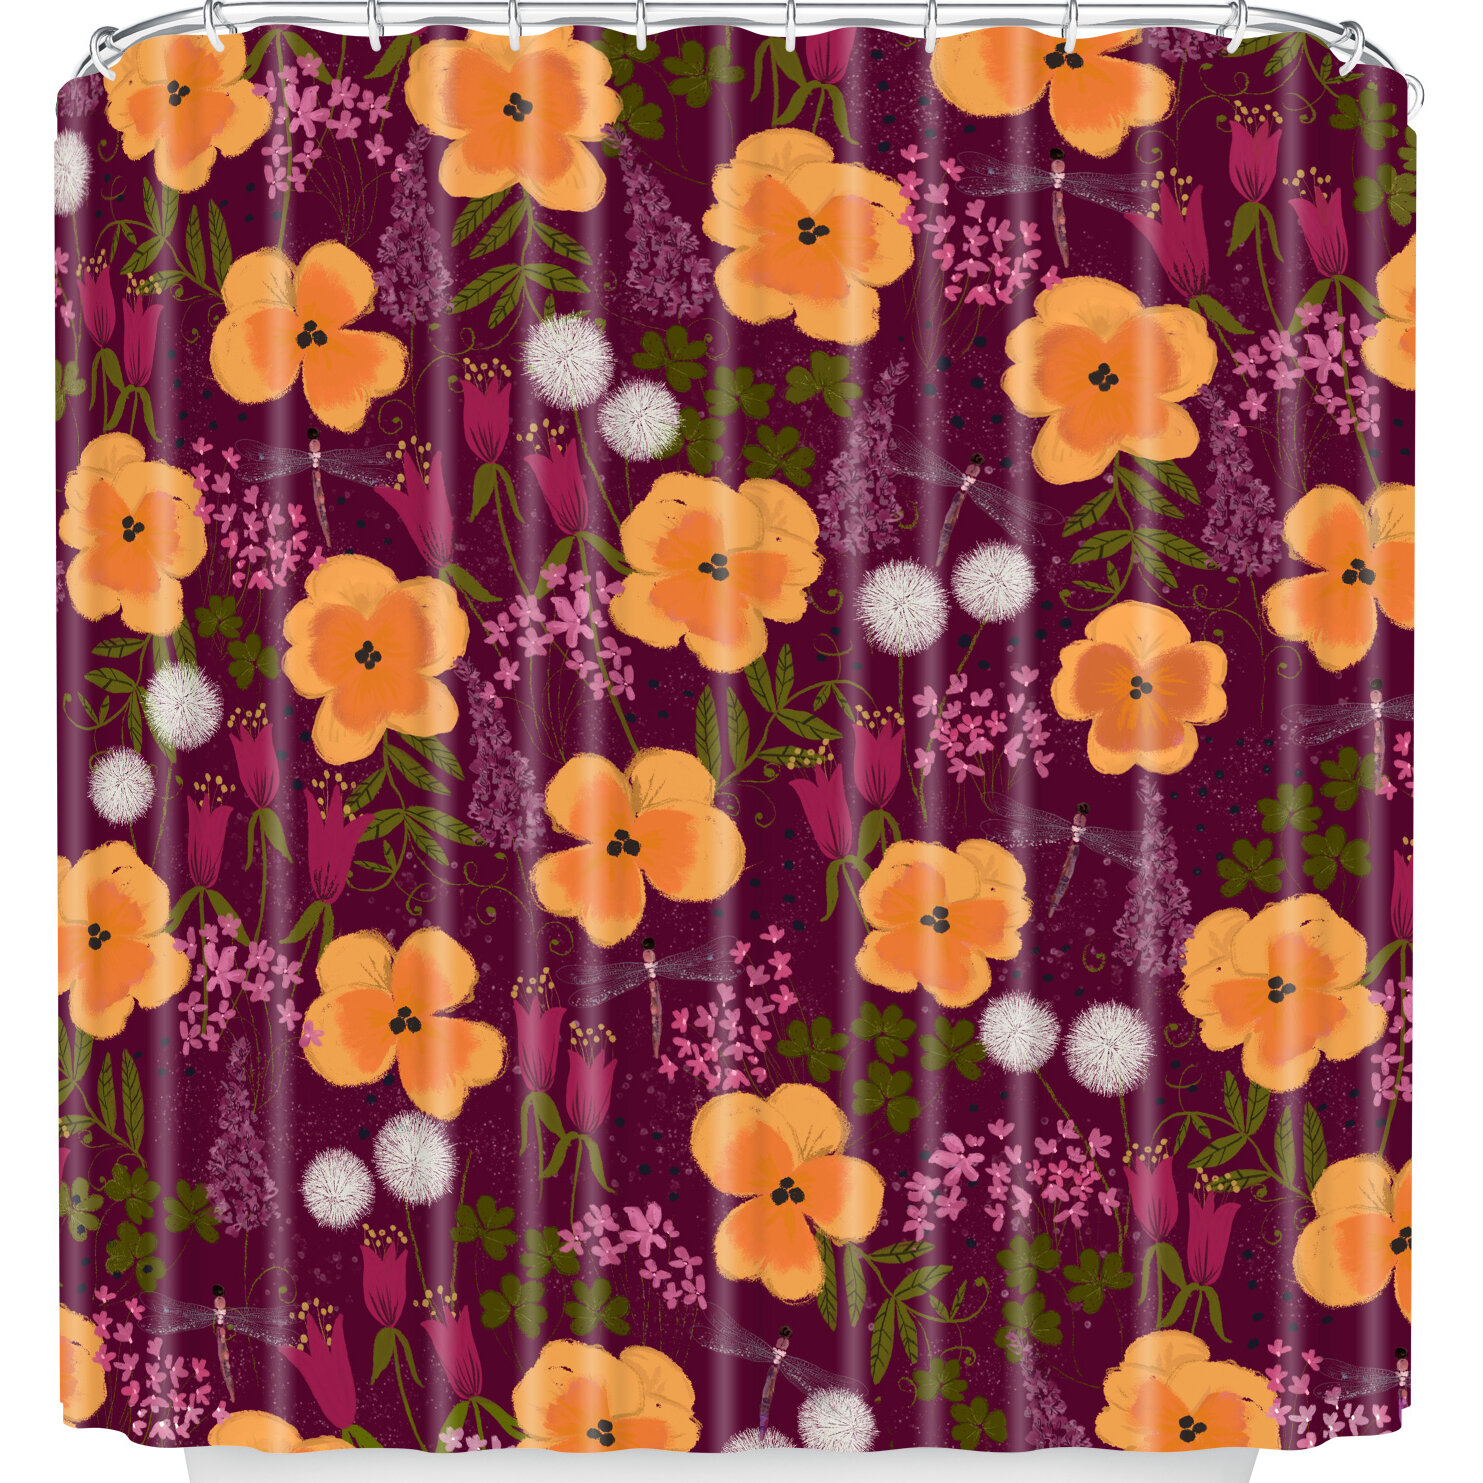 East Urban Home Dandelions And Wild Pansies Shower Curtain